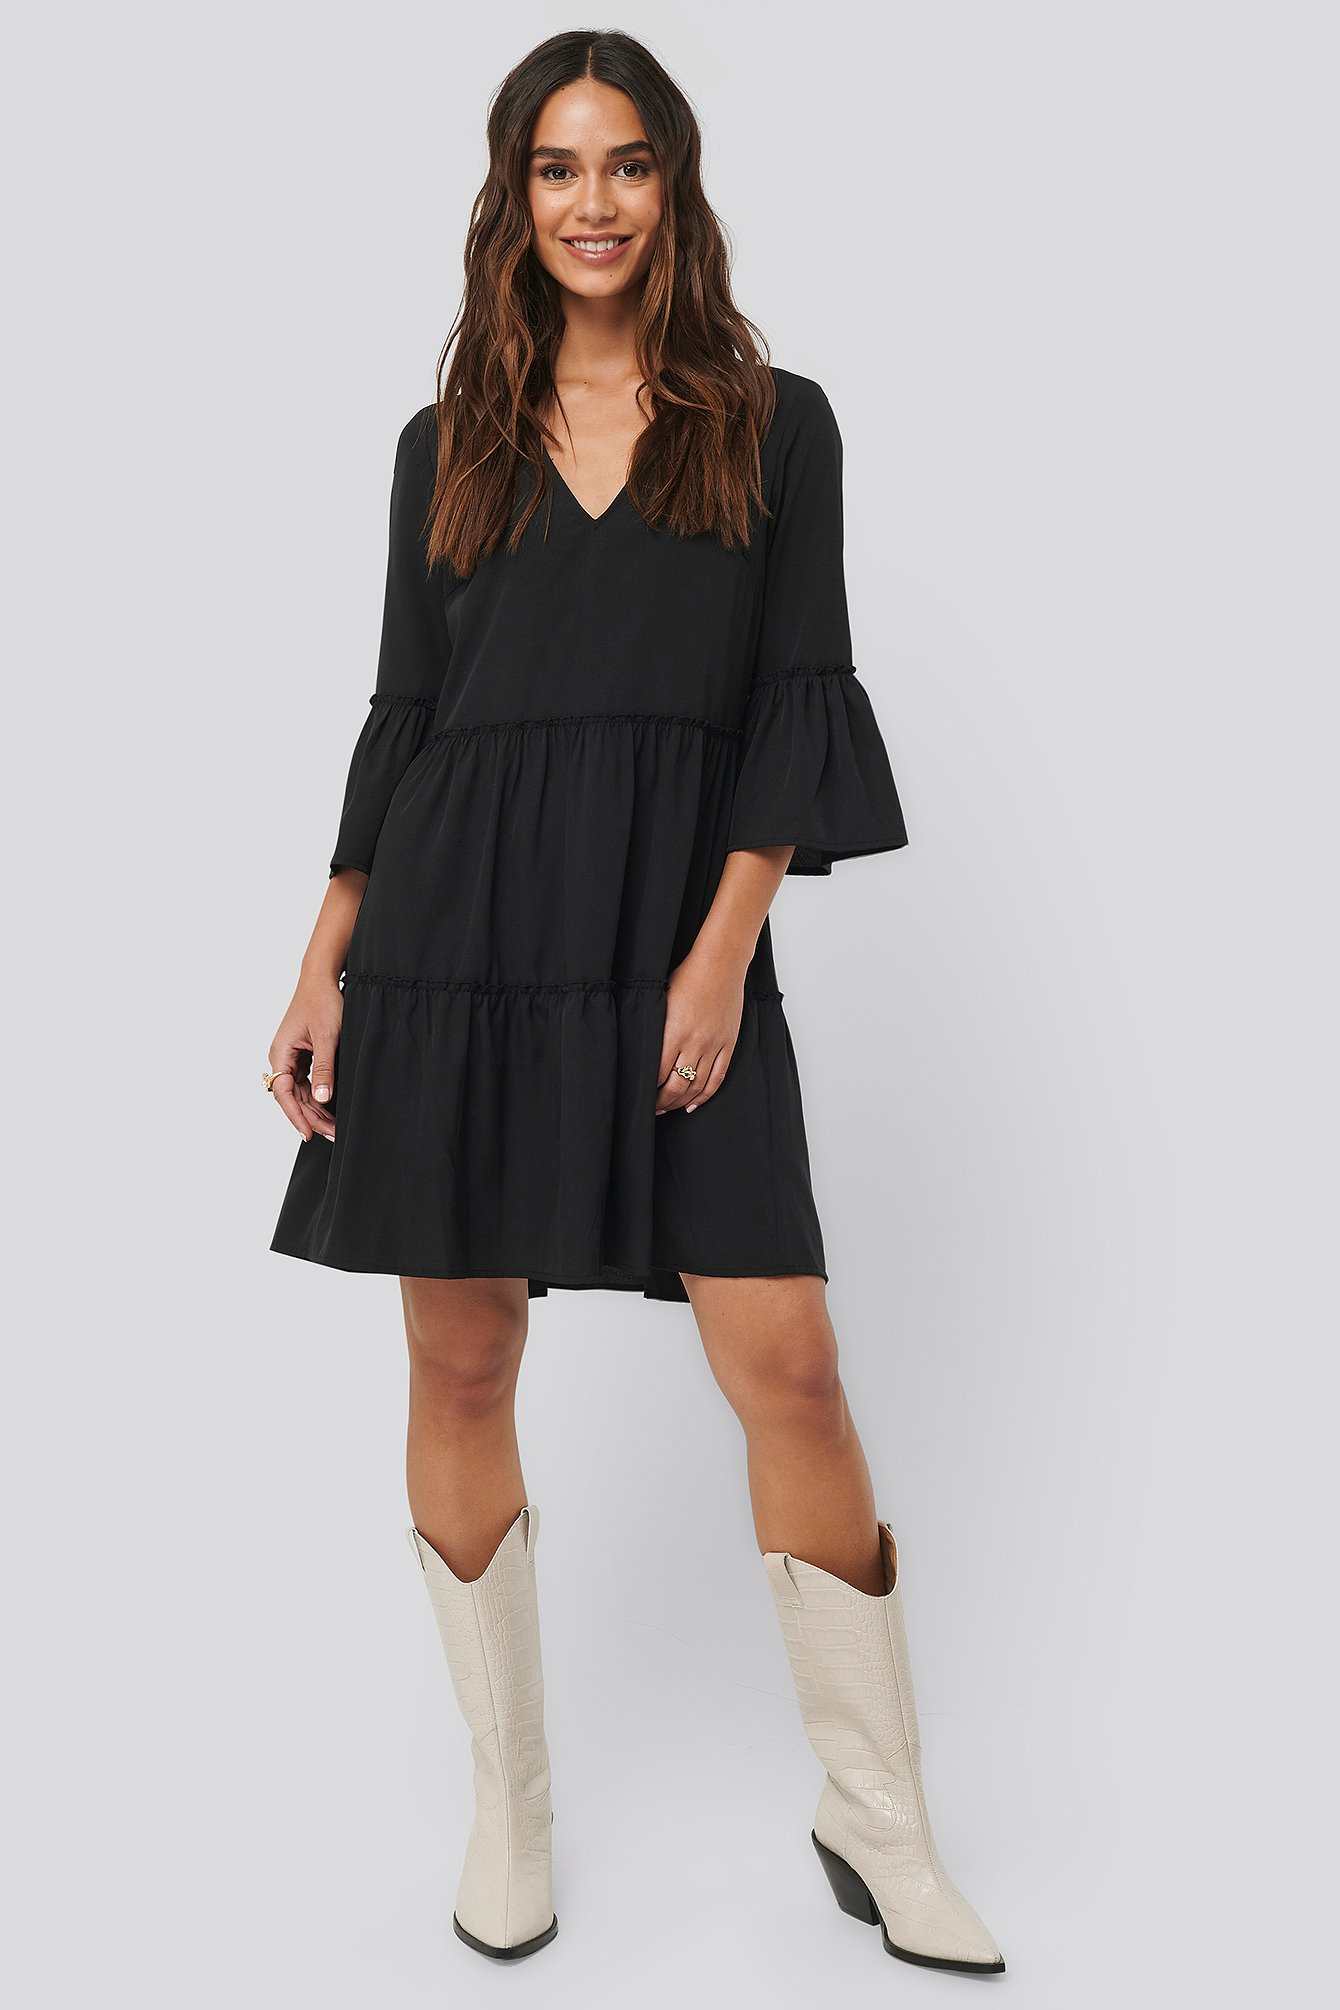 Black V-neck Ruffle Dress